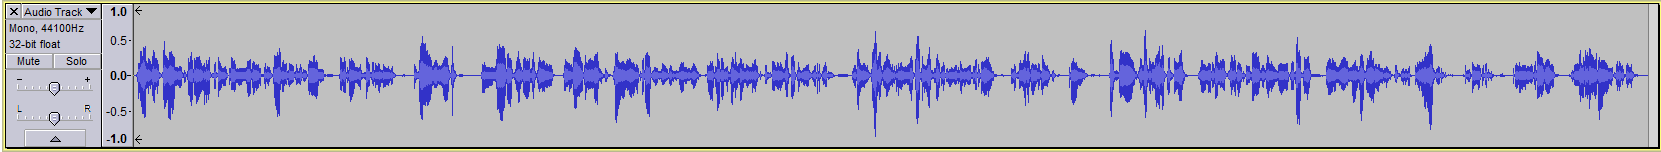 Audacity >> Waveform >> Spoken Word Track